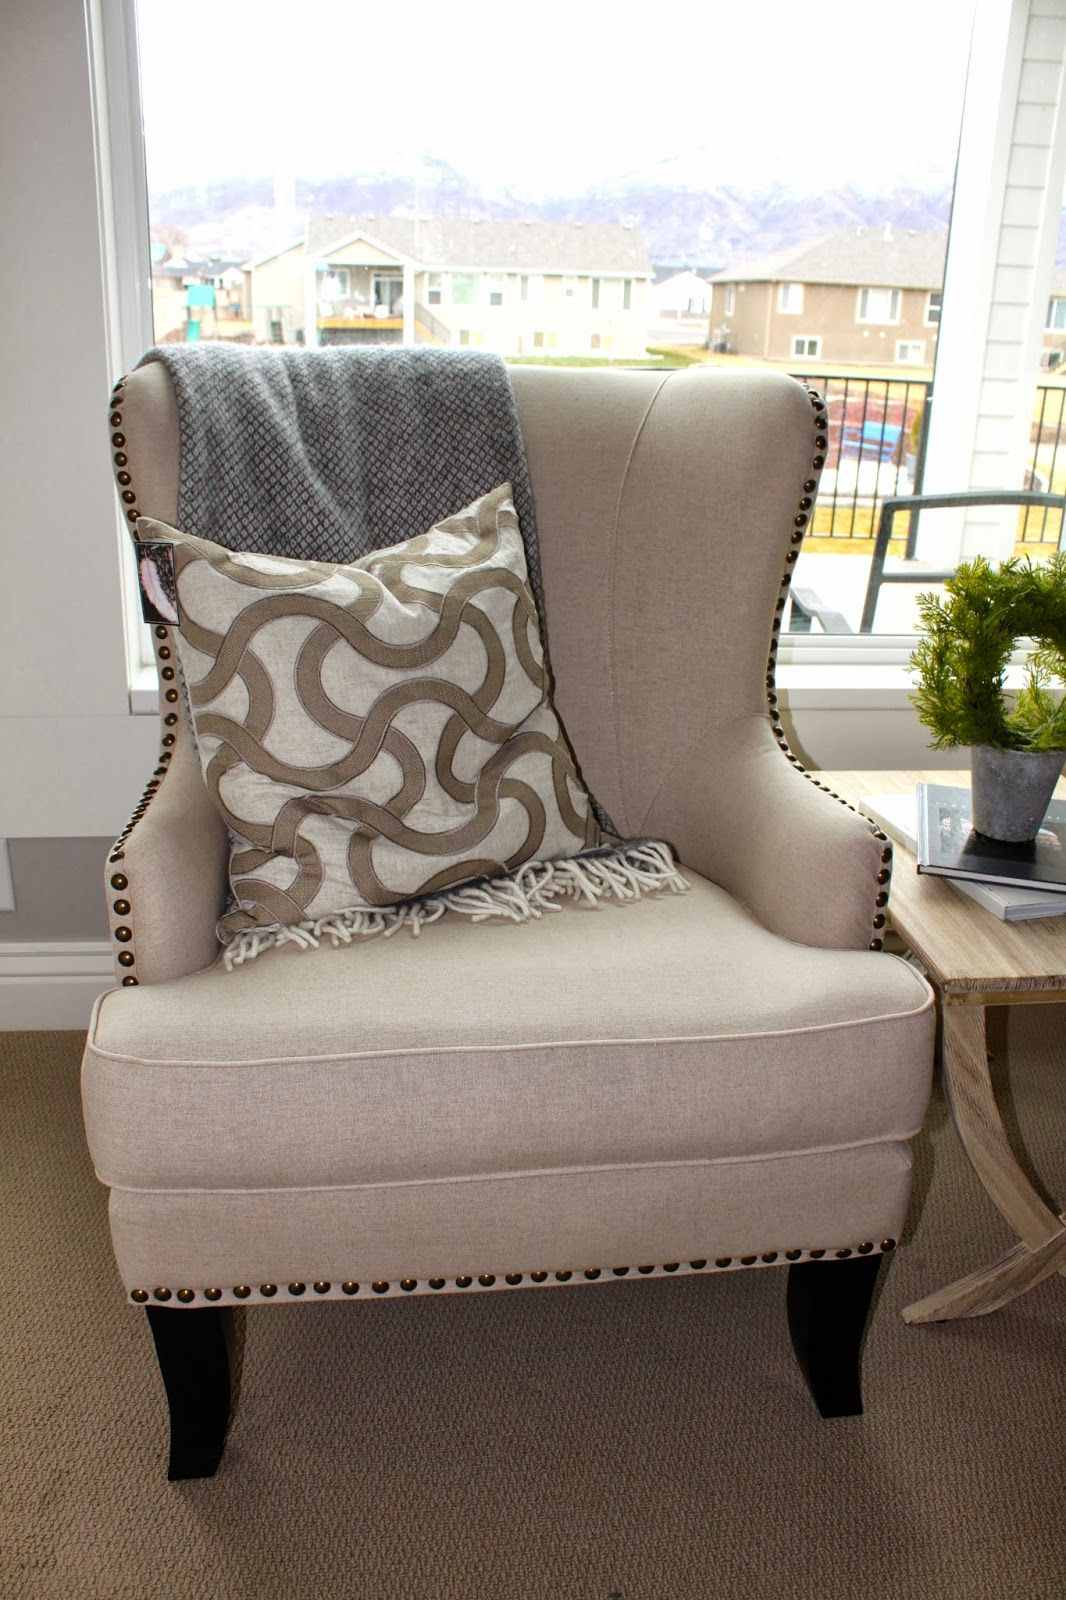 Grant chair from Down East Home | Furniture/Decor | Pinterest ...